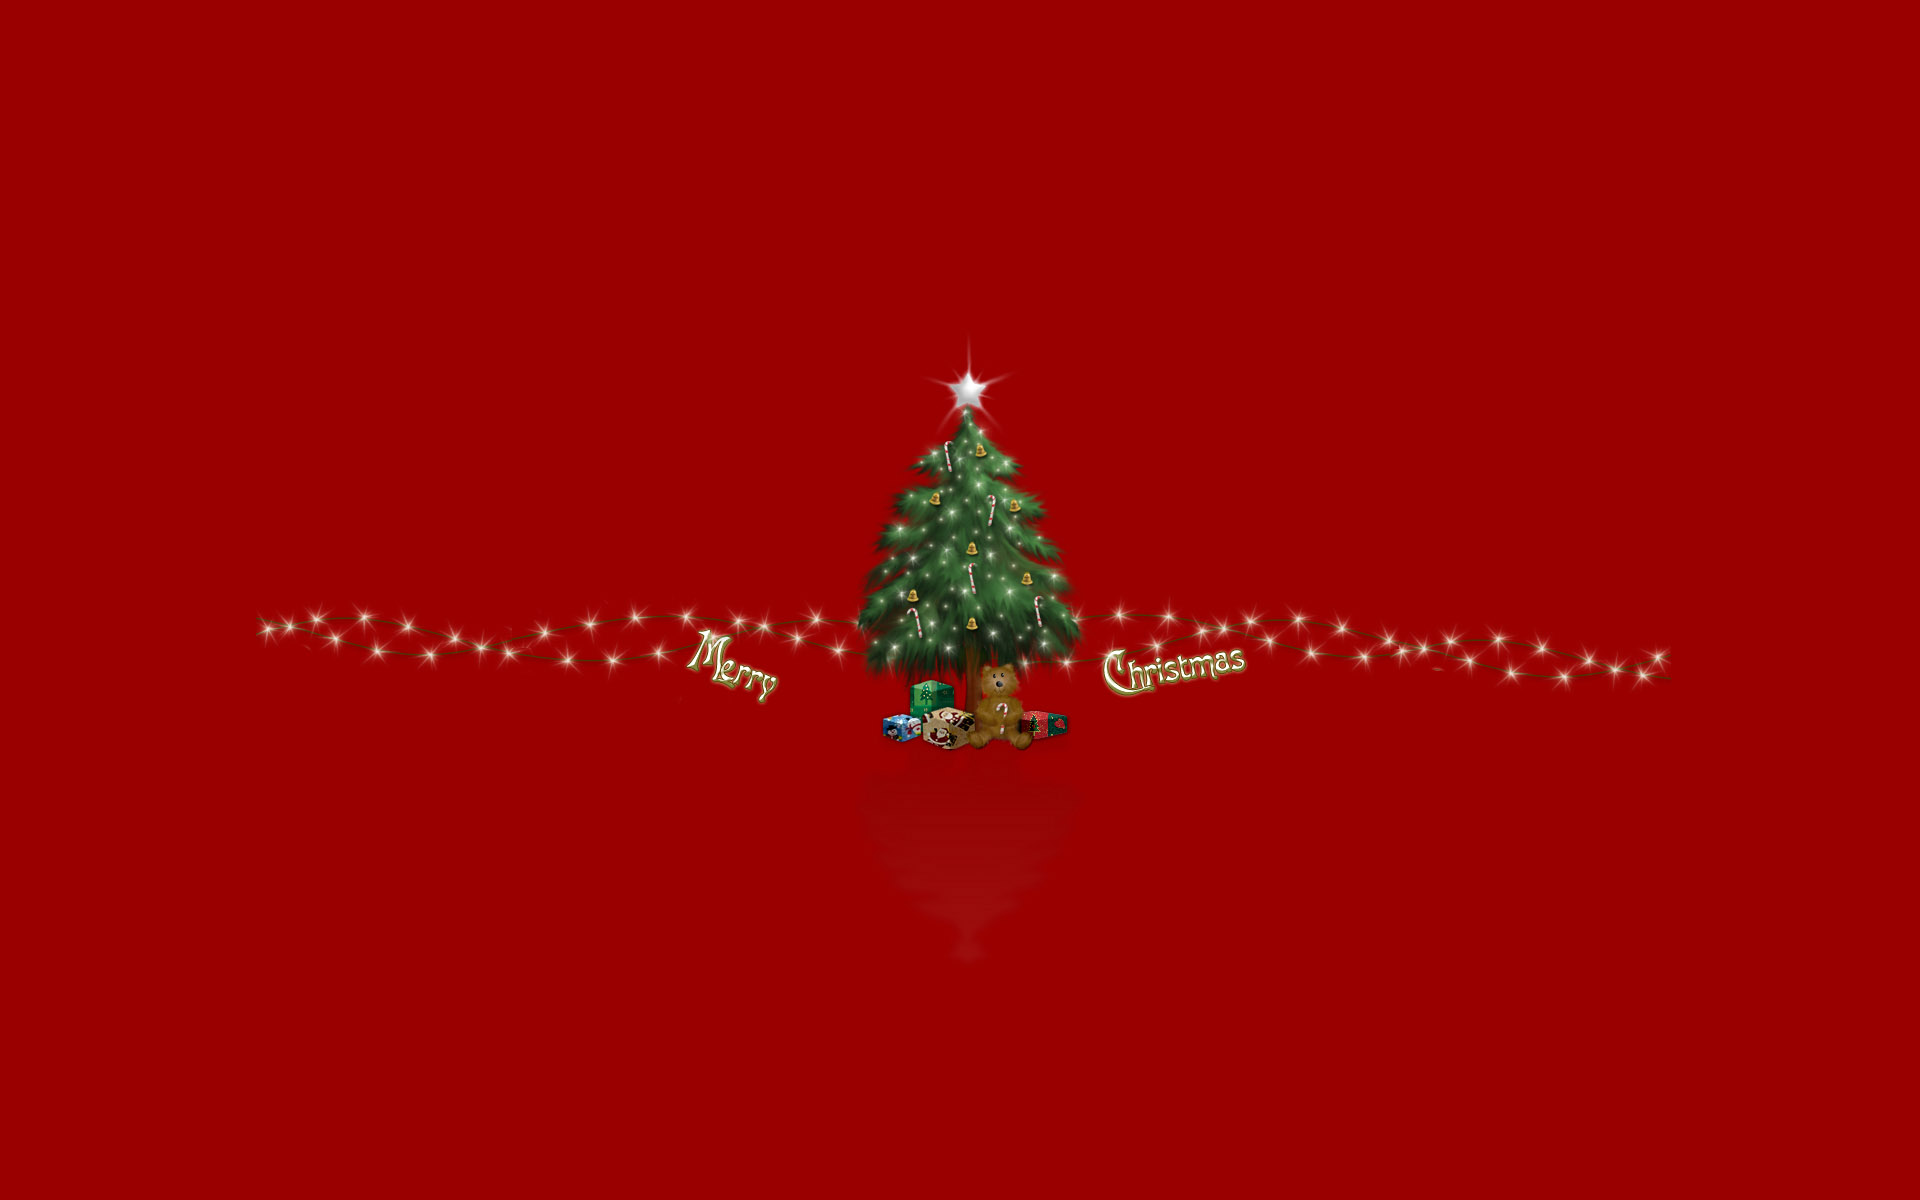 Christmas Wallpaper 21183